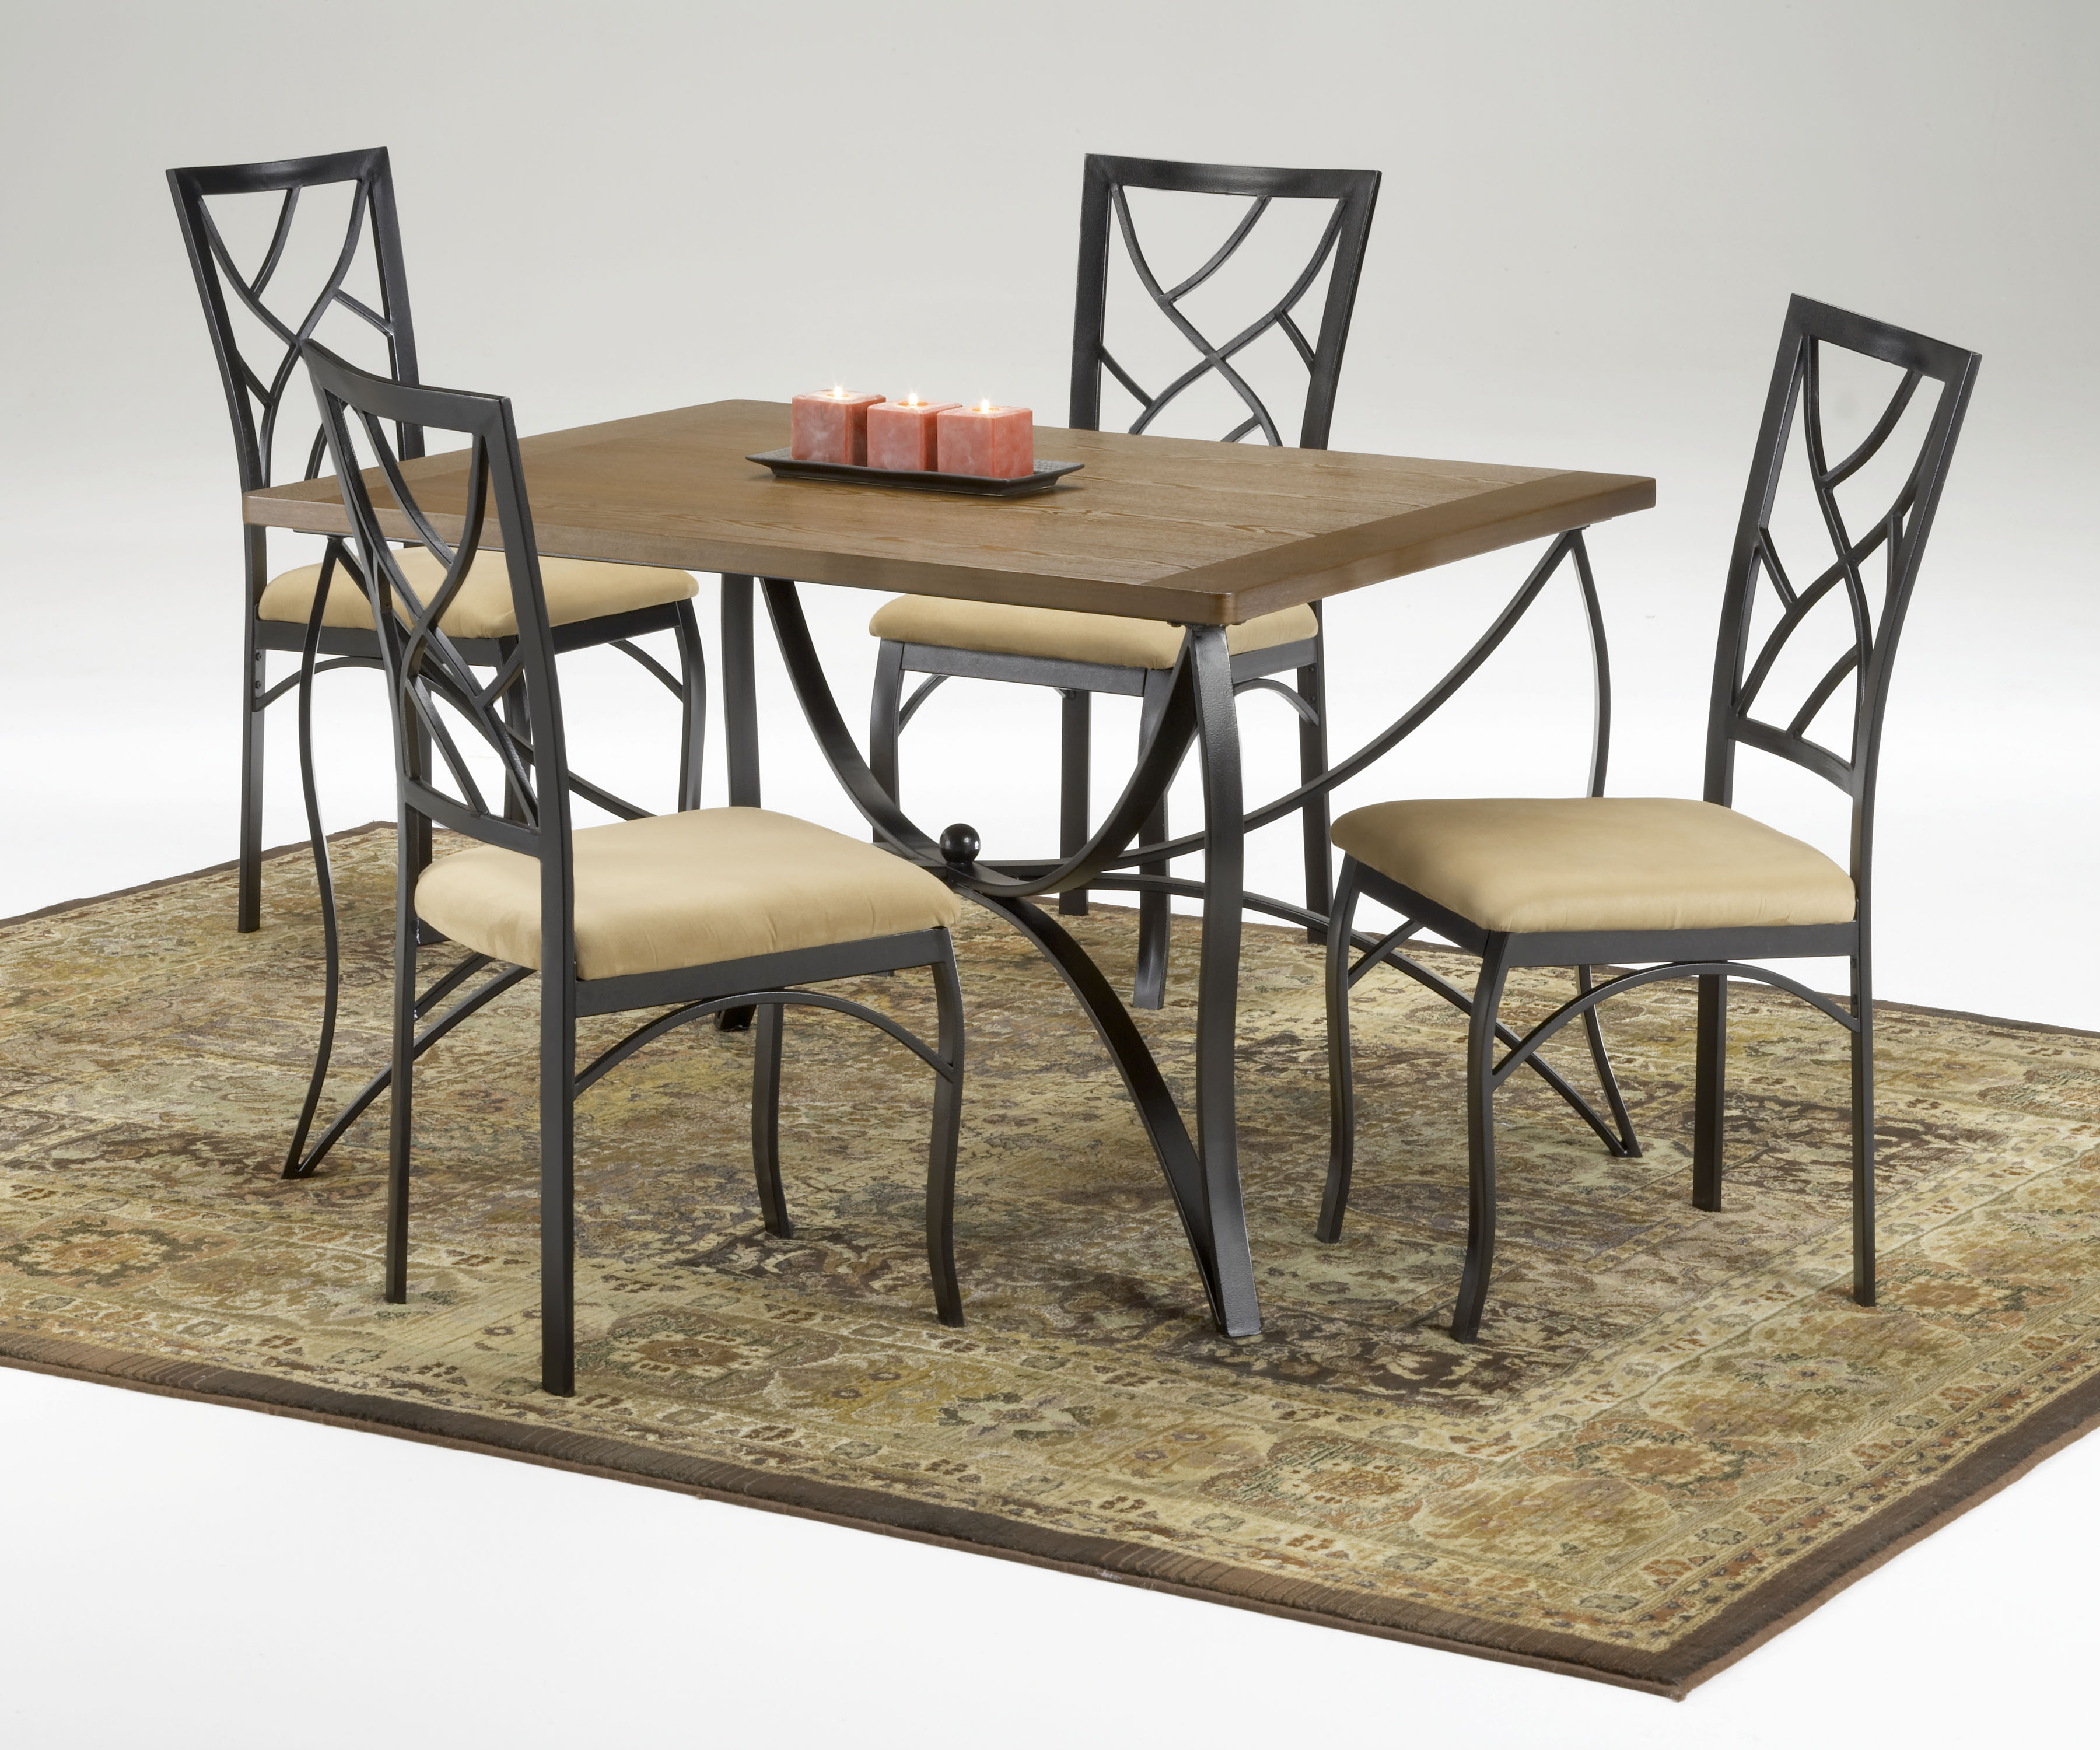 Leaf dining table and chairs chair pads amp cushions